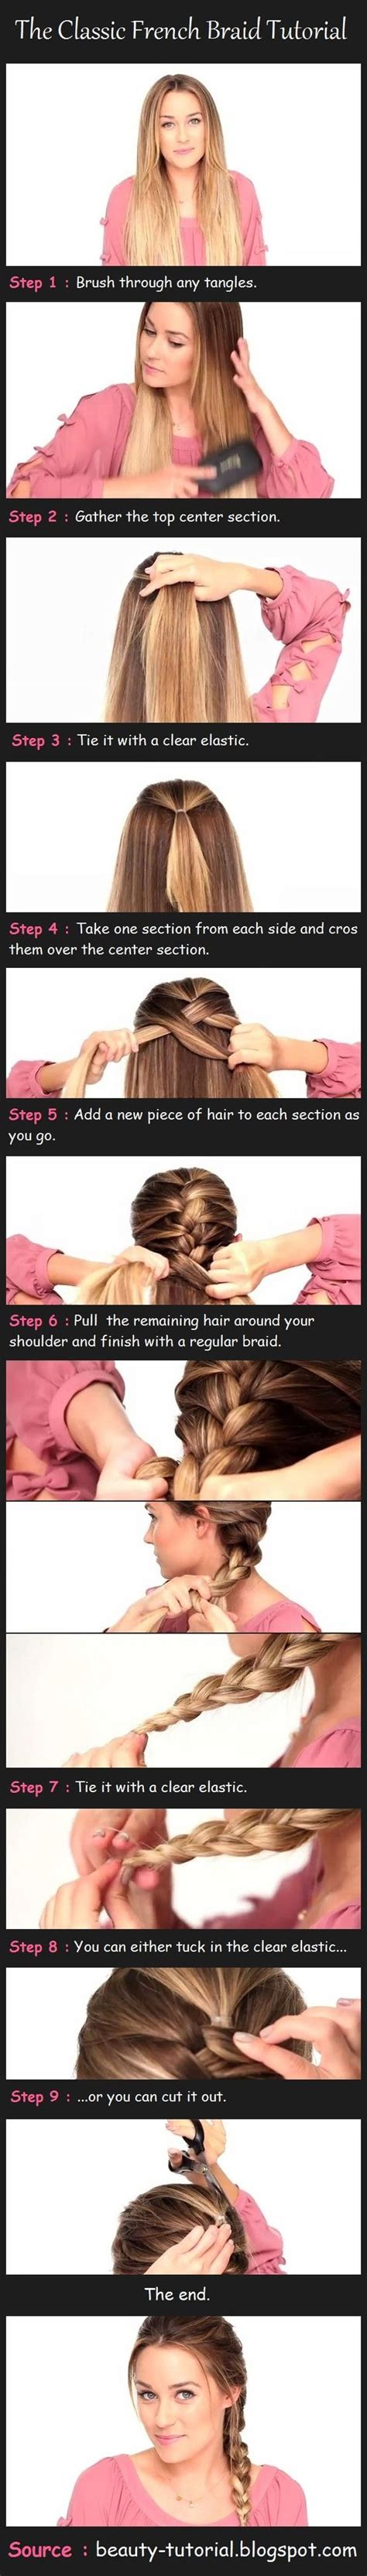 classic french braid tutorial pictures